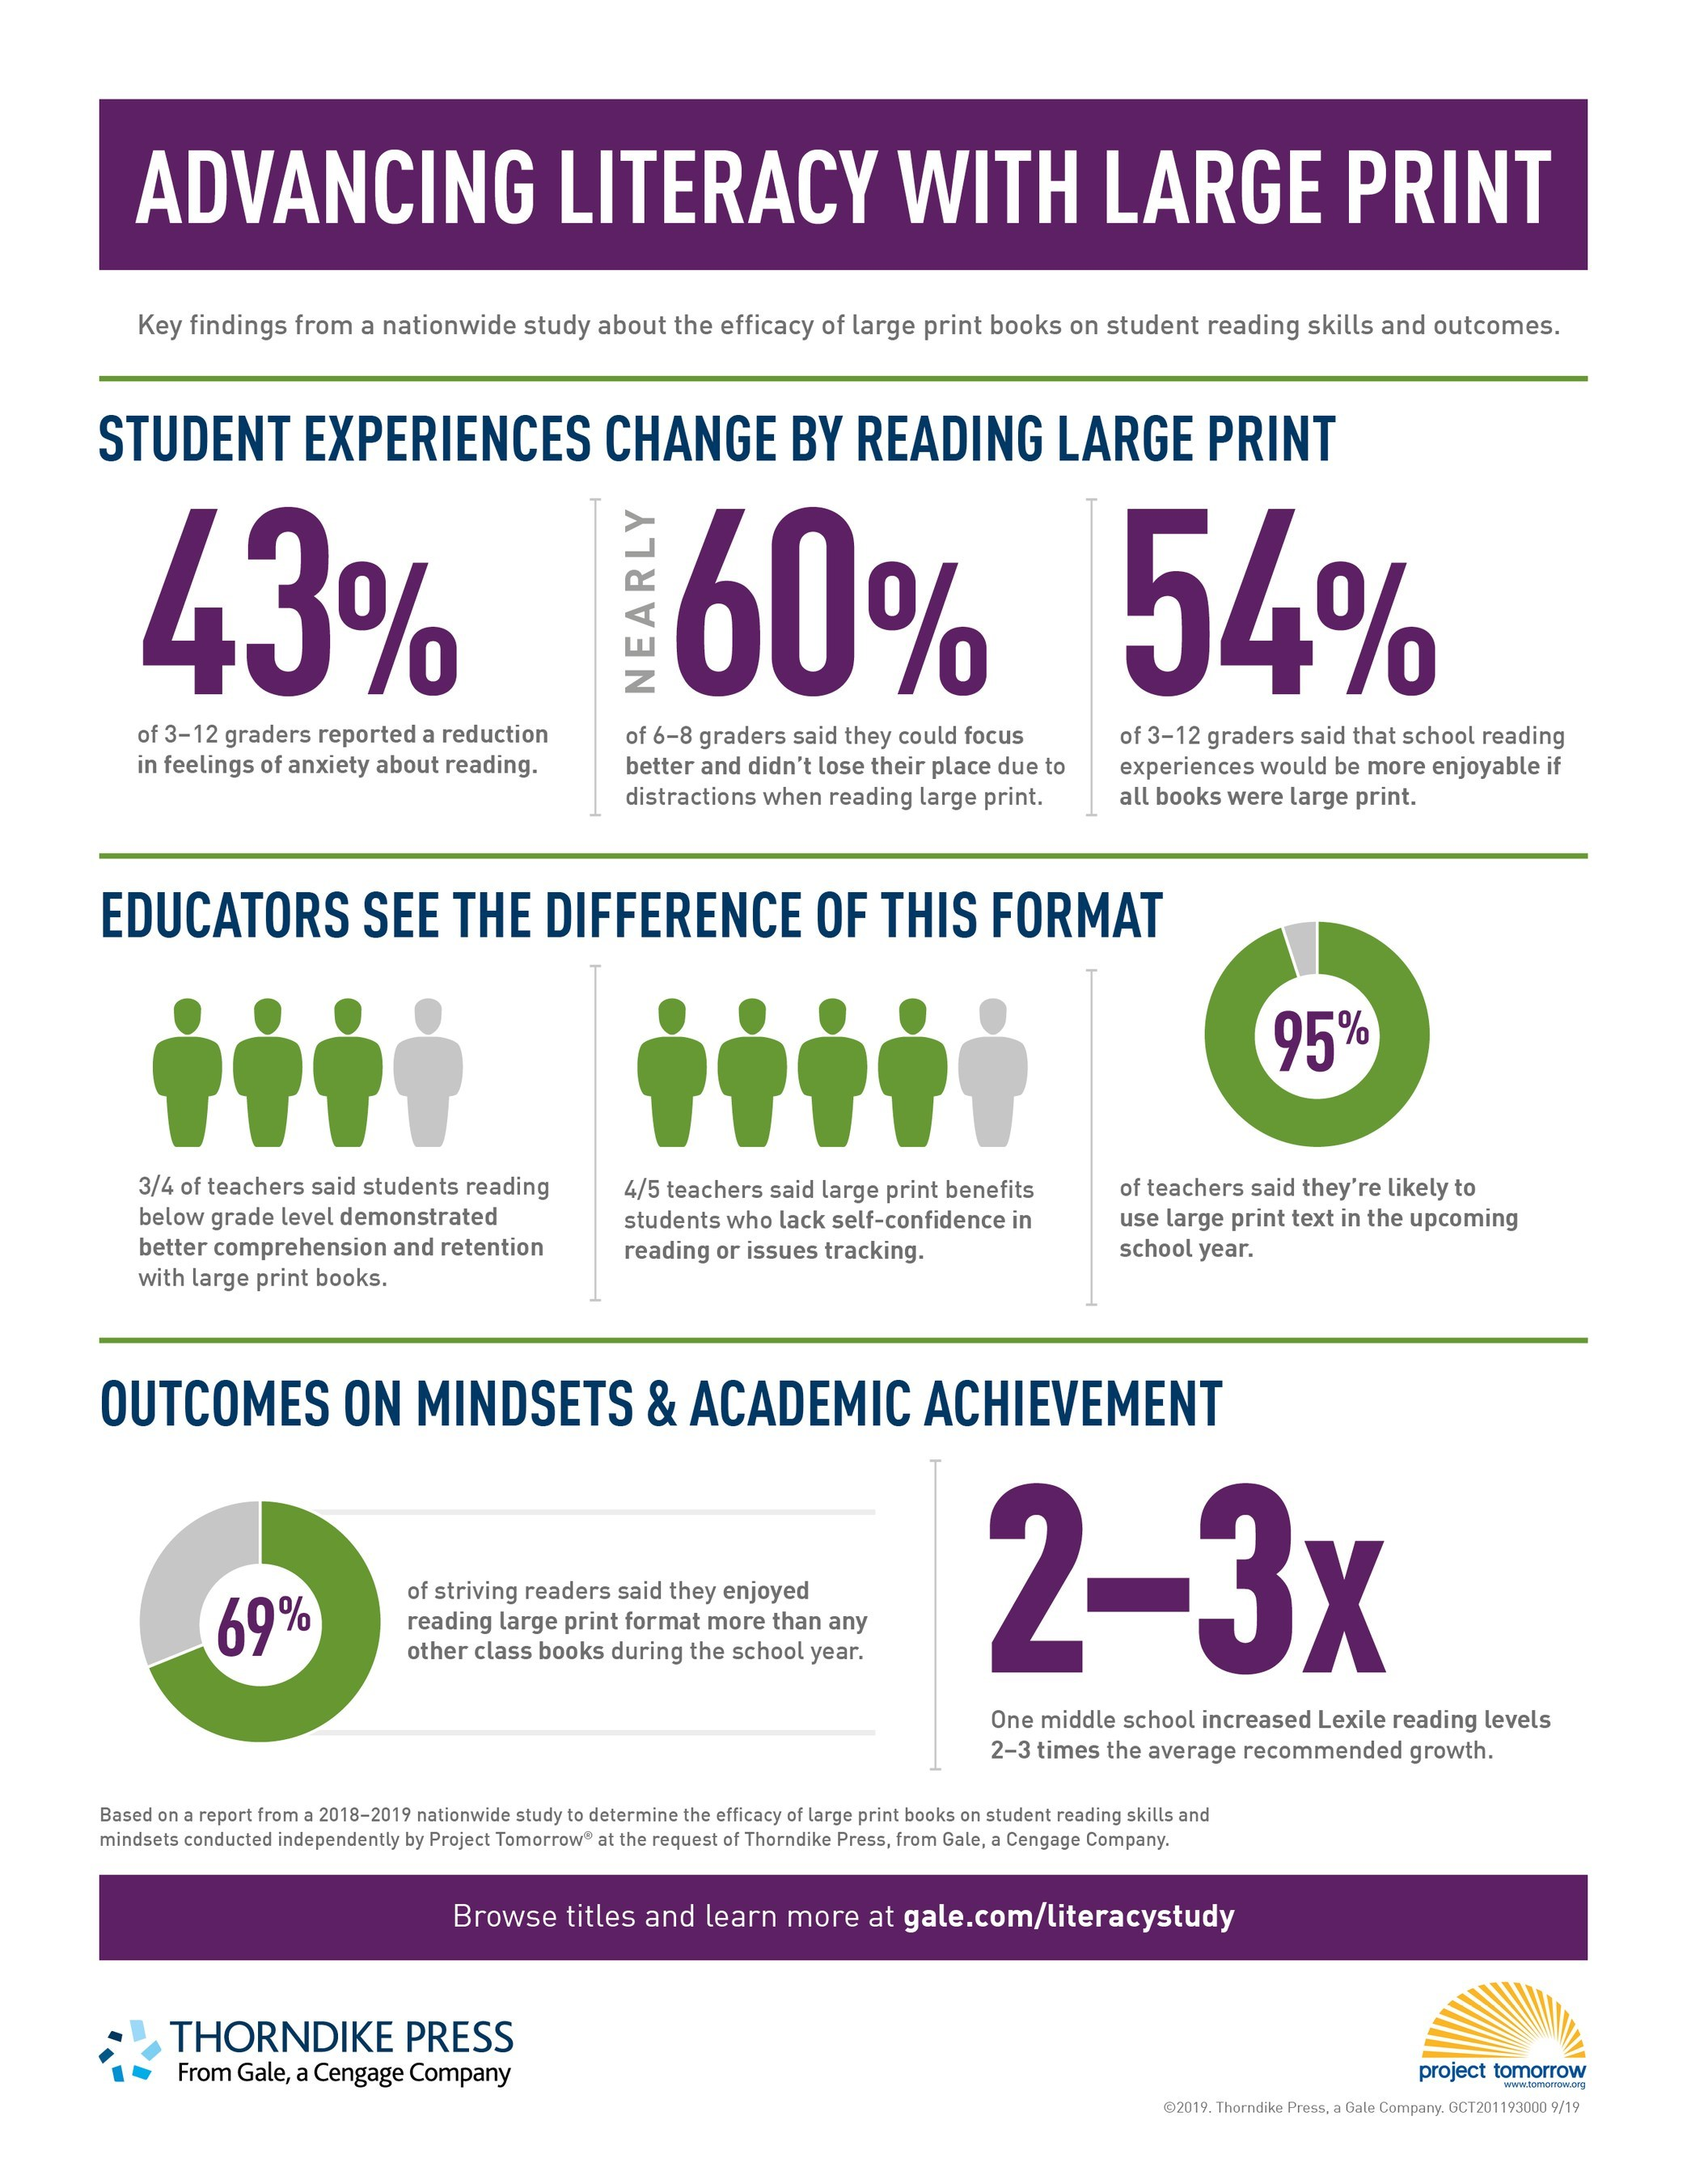 New Study Finds Print Books Improve Student Reading